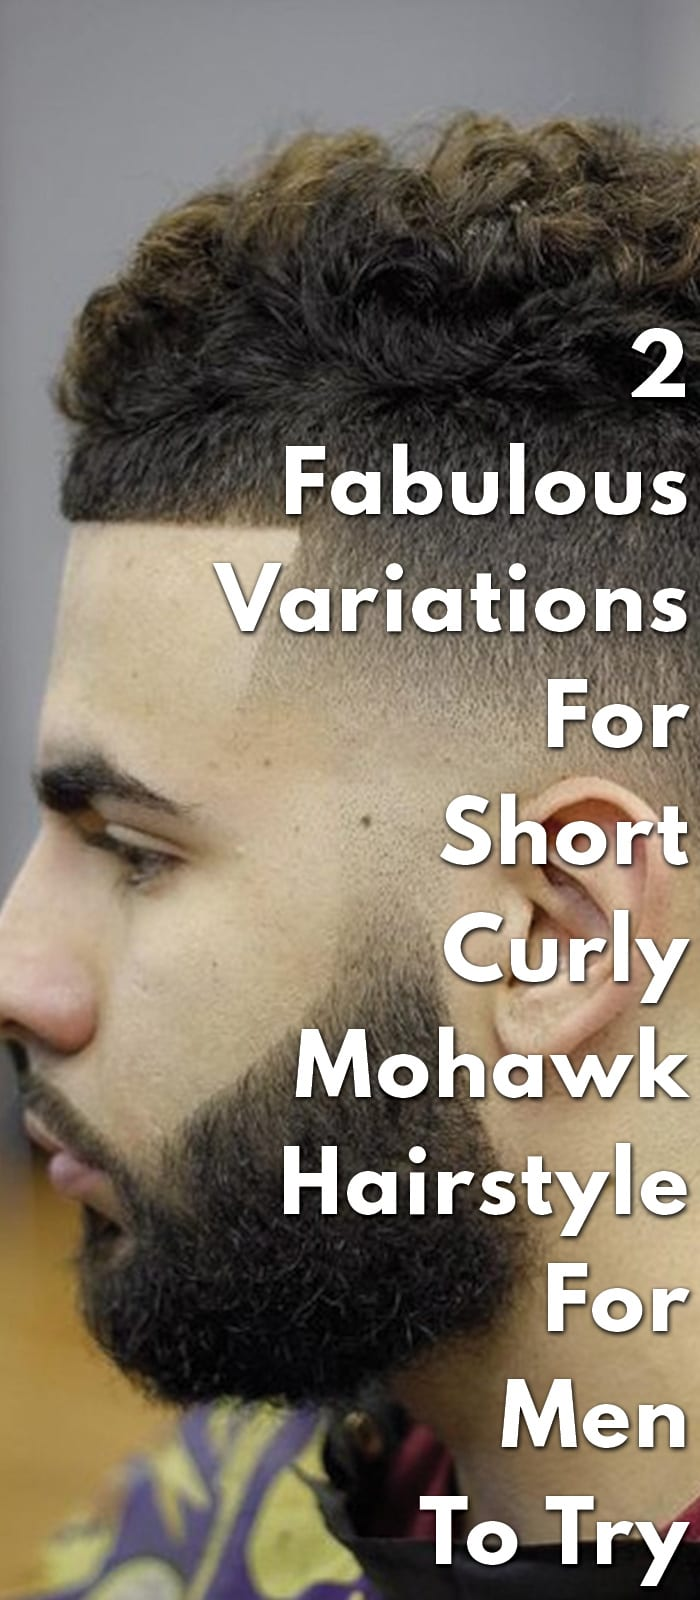 2 Fabulous Variations For Short Curly Mohawk Hairstyle For Men To Try